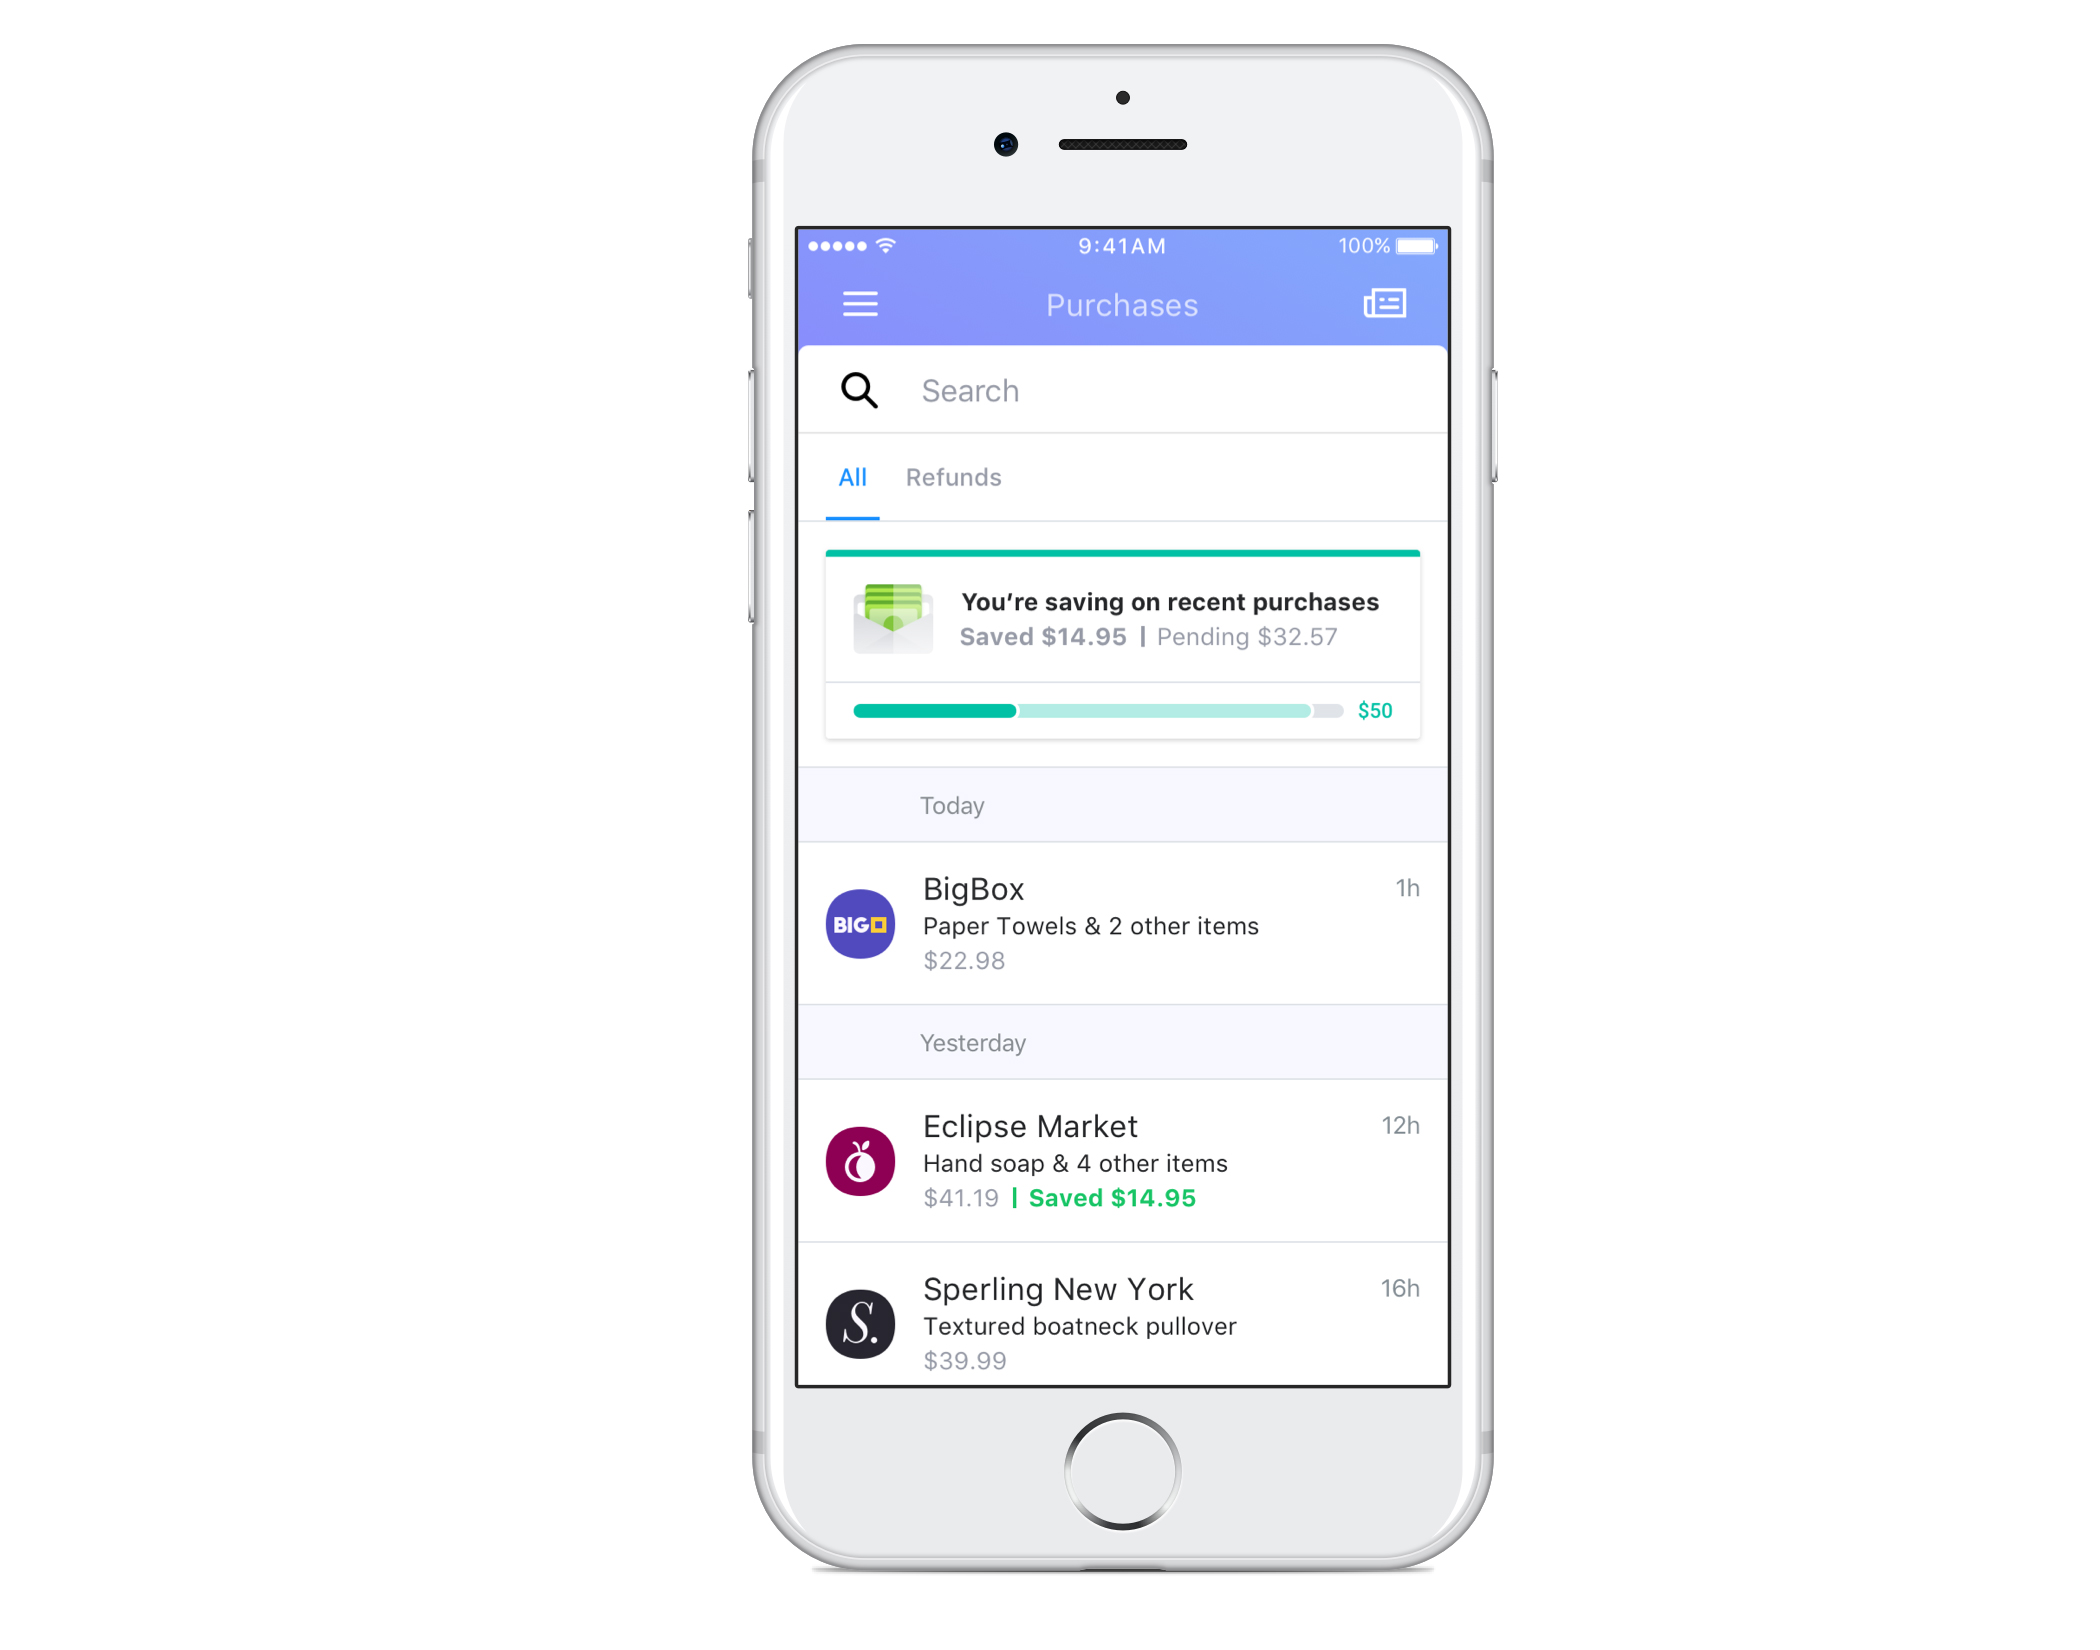 Yahoo Mail Announces Partnerships With Shoprunner, Earny